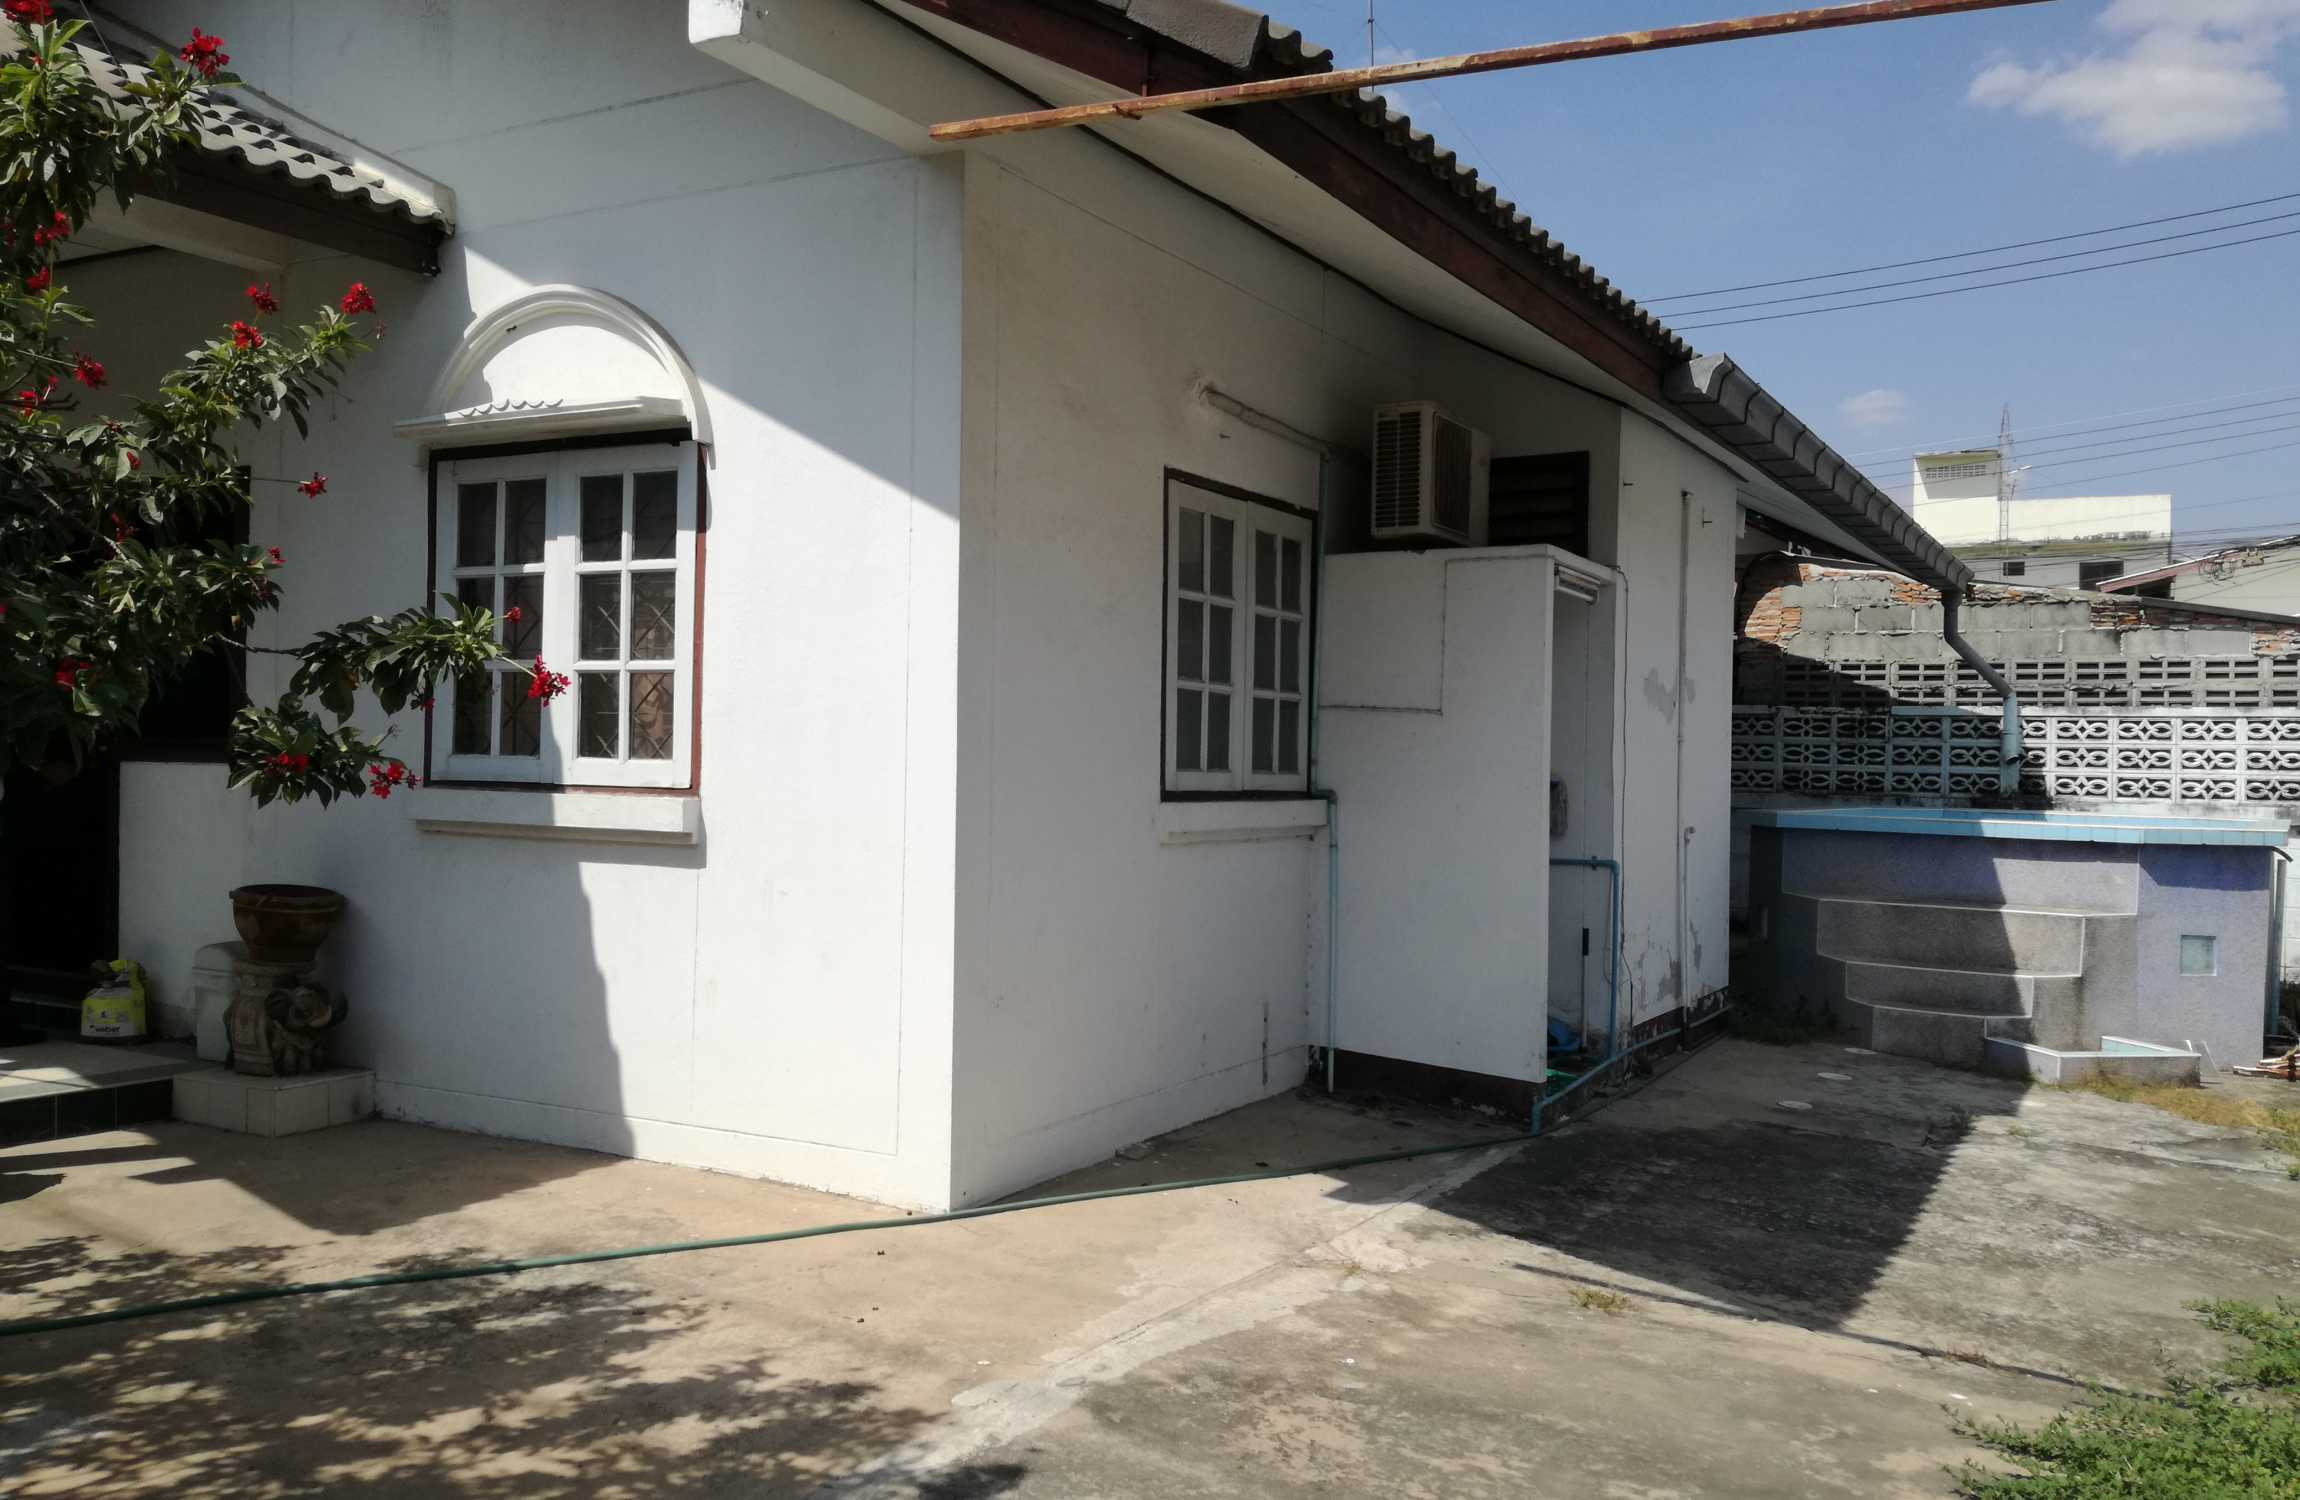 A Detached 2 Bedroom House for Rent in the Centre of Buriram